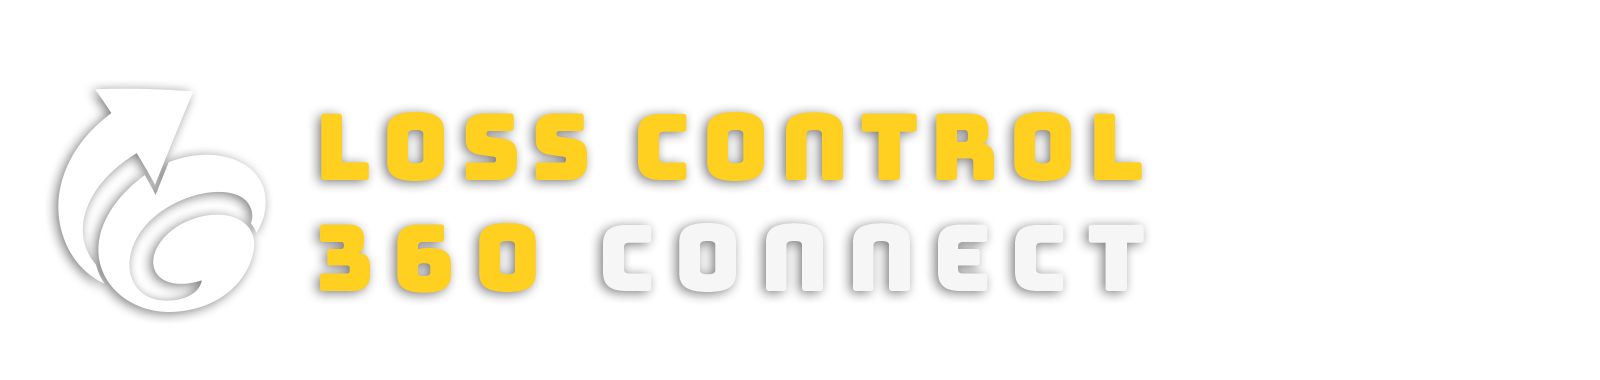 Loss Control 360 Connect Conference 2017